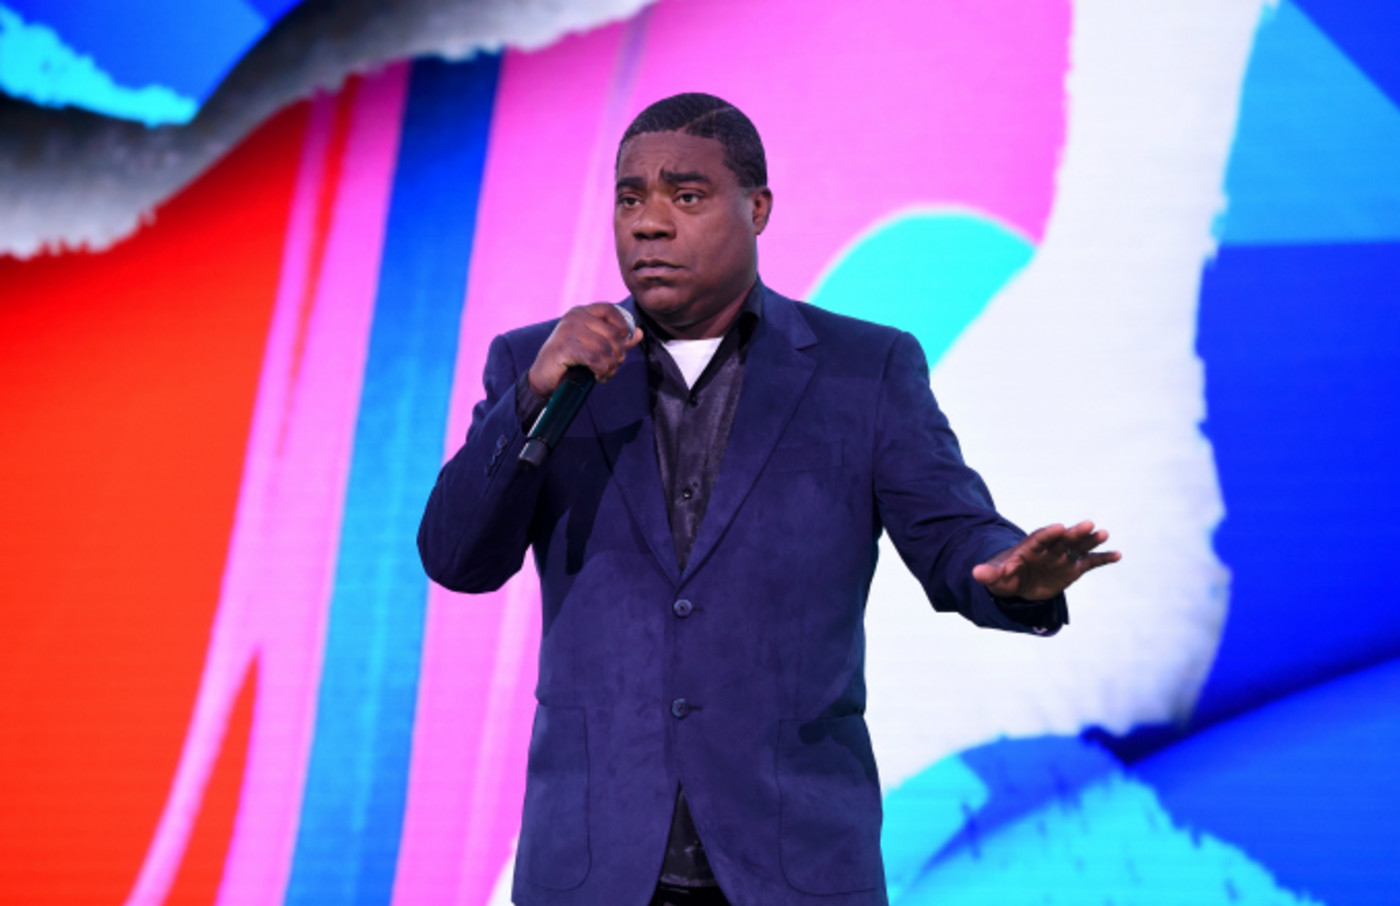 Tracy Morgan of TBS's The Last O.G speaks onstage